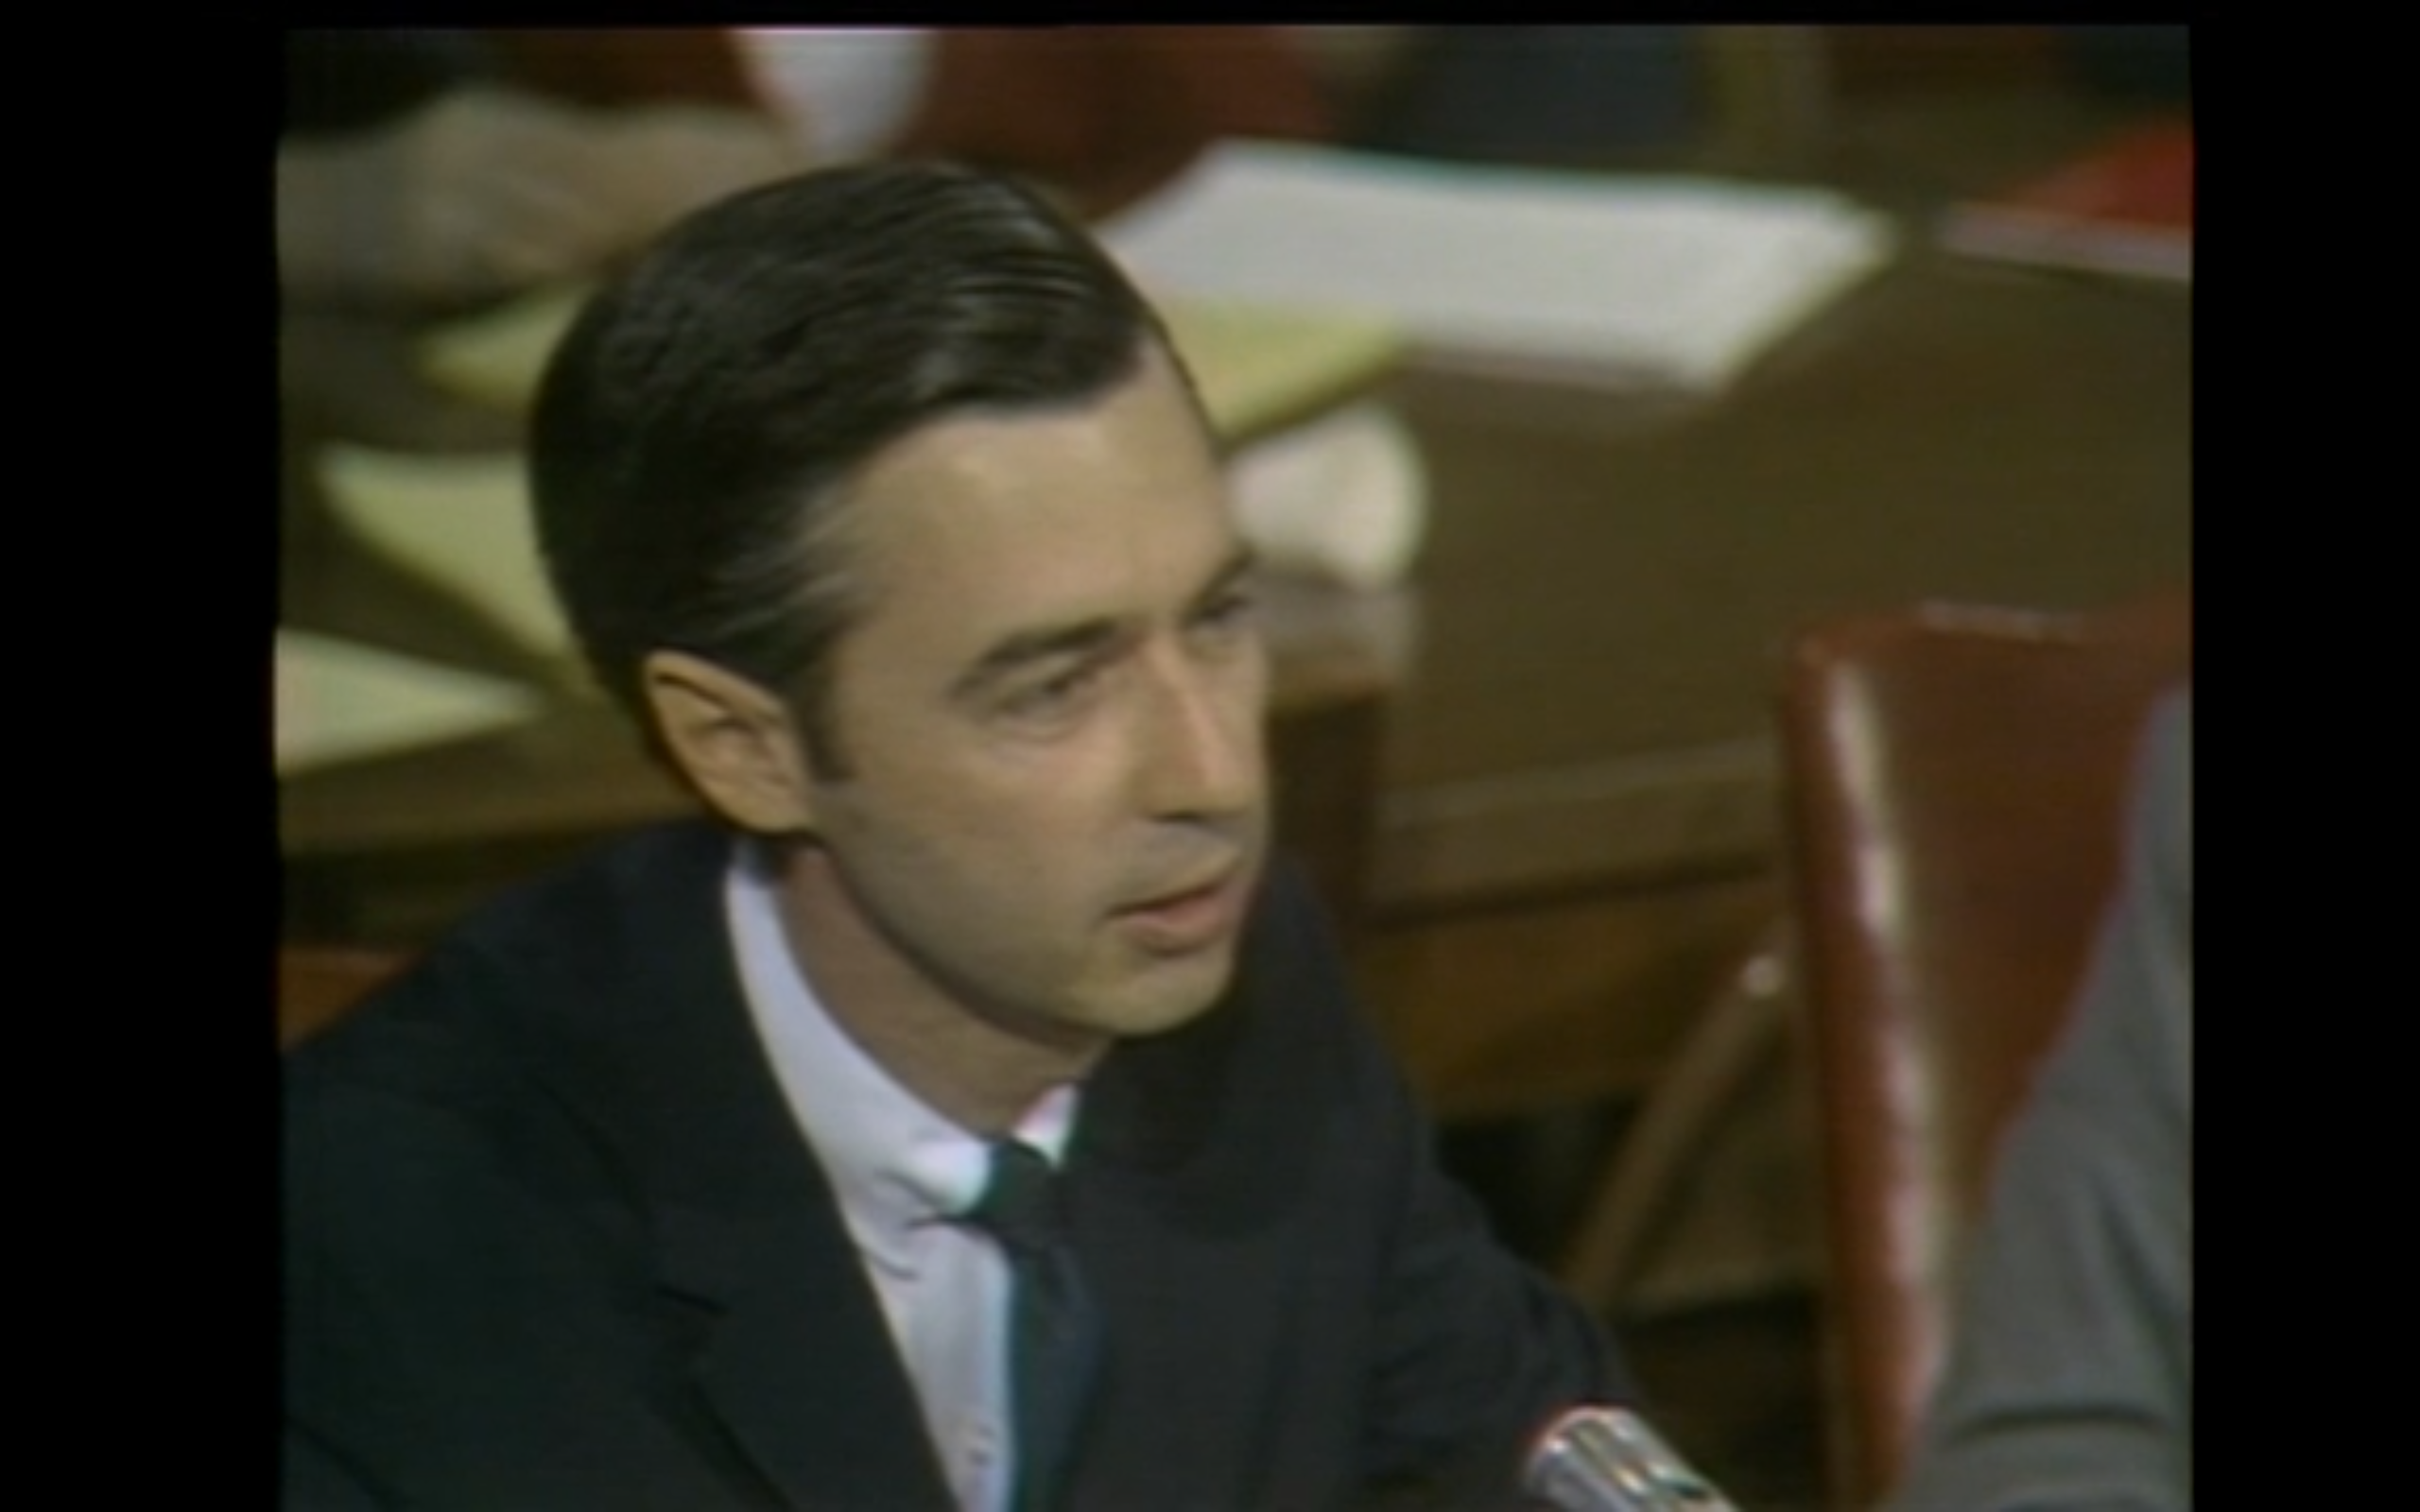 In an NET Special featuring the Public Television Hearings in 1969, Fred Rogers, star of